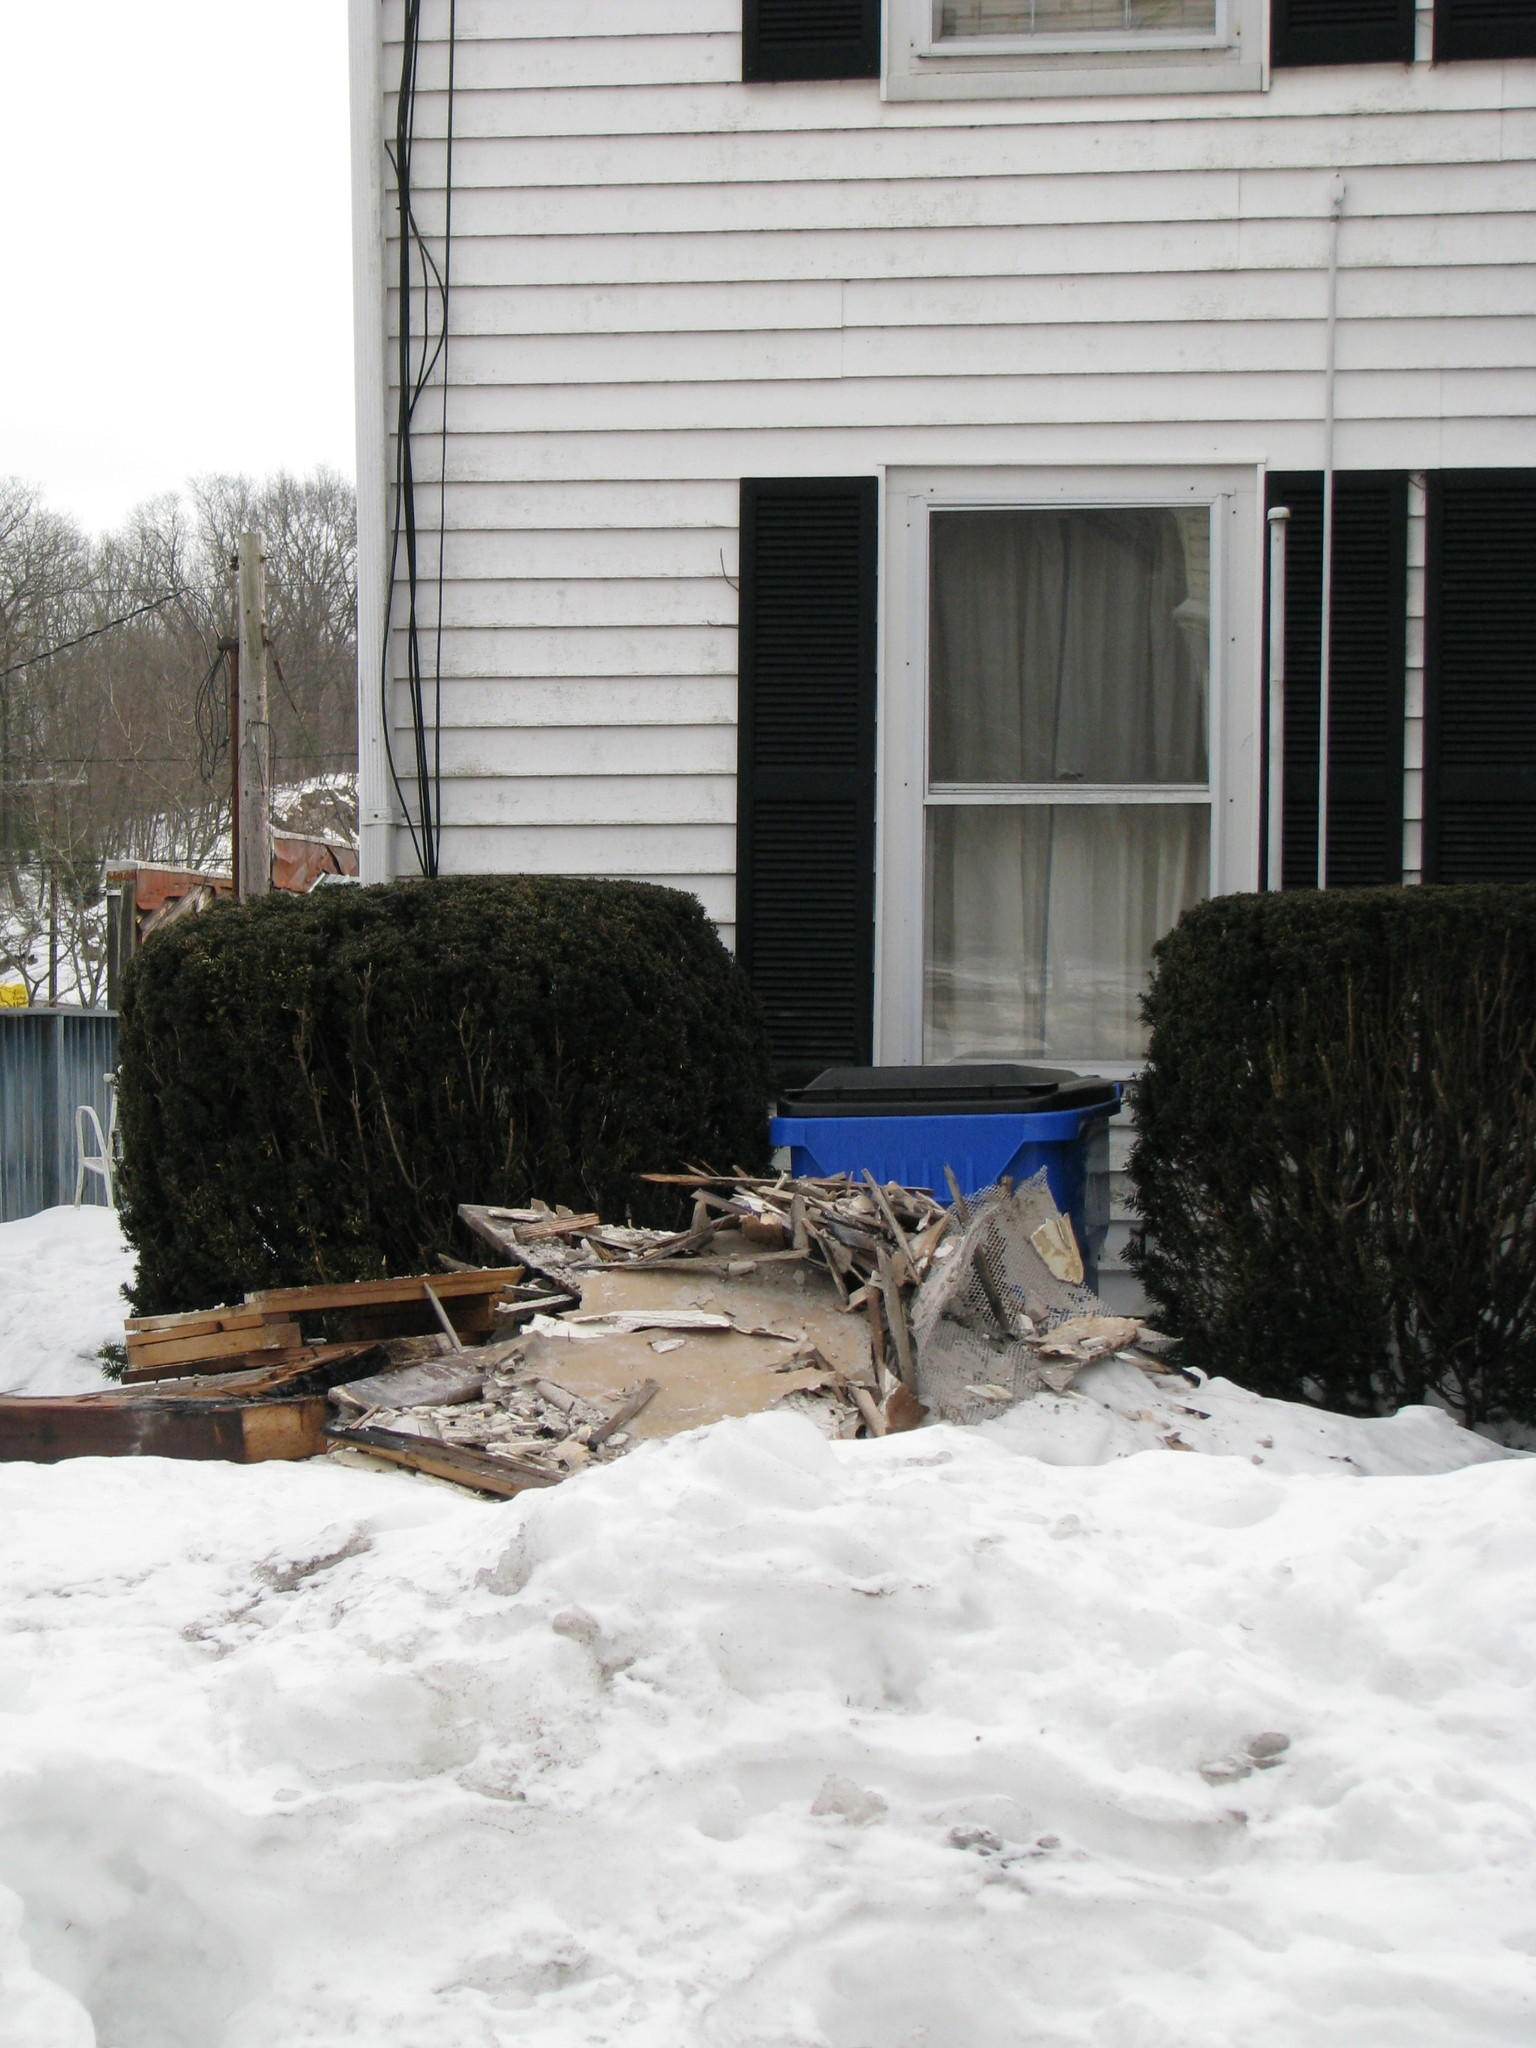 Debris leftover after Canton firefighters put out a fire at a house at 52 Bridge St. on March 2.